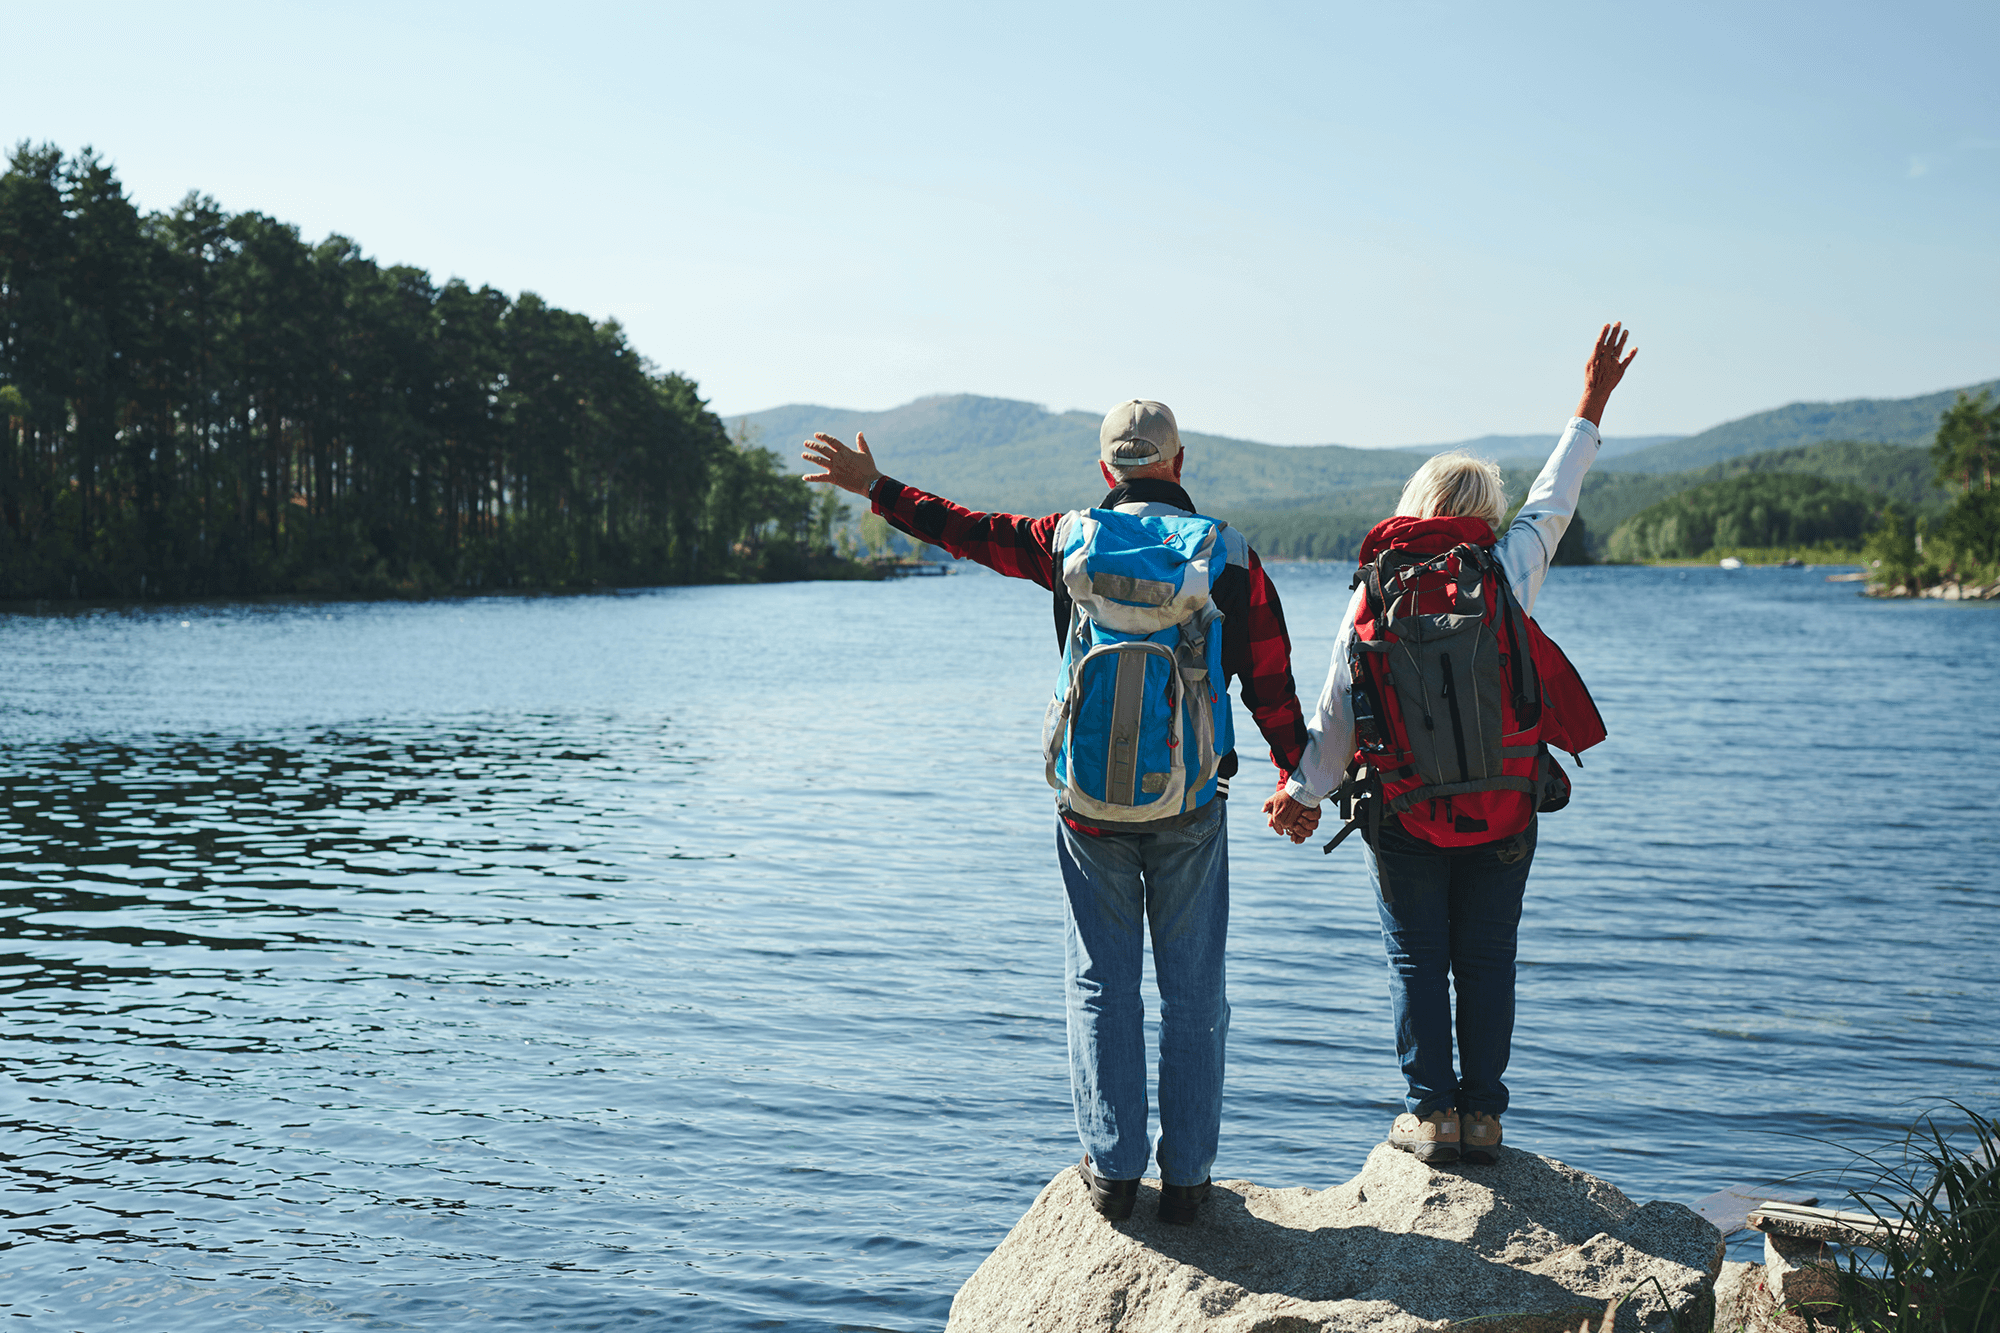 An elderly couple wearing hiking gear stands on a rock overlooking a lake with their back facing the camera and their arms up in excitement.